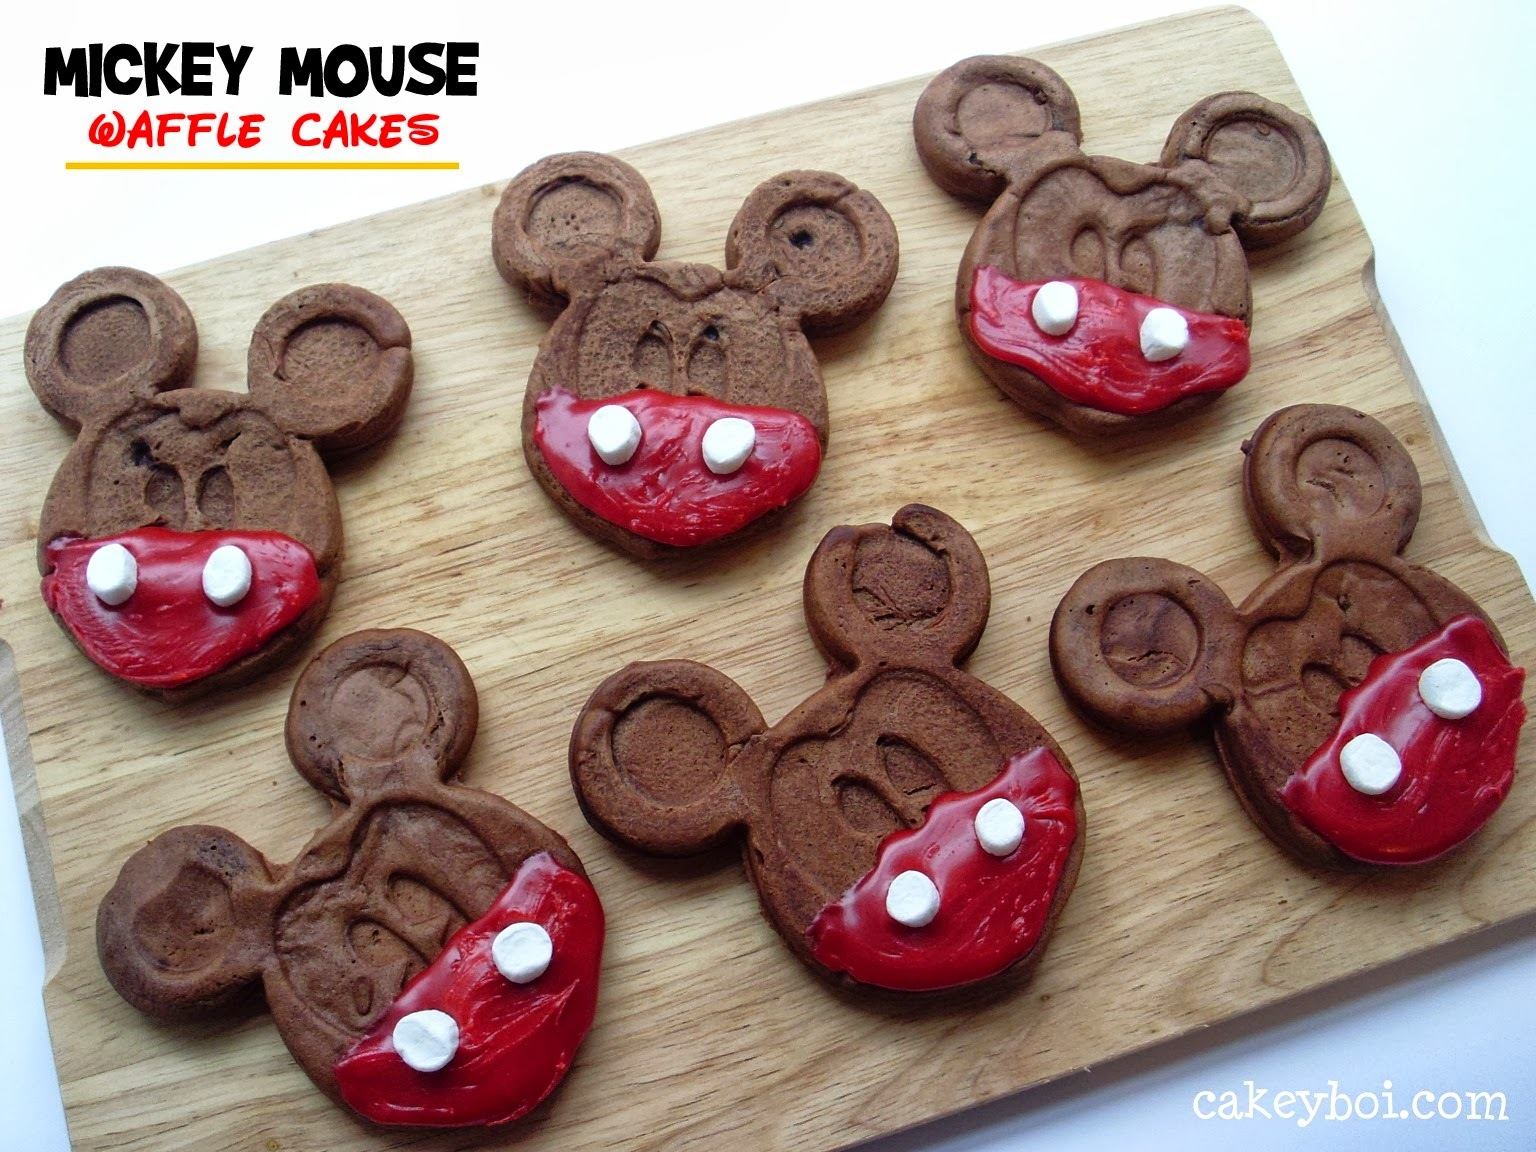 Mickey Mouse Waffle Cakes